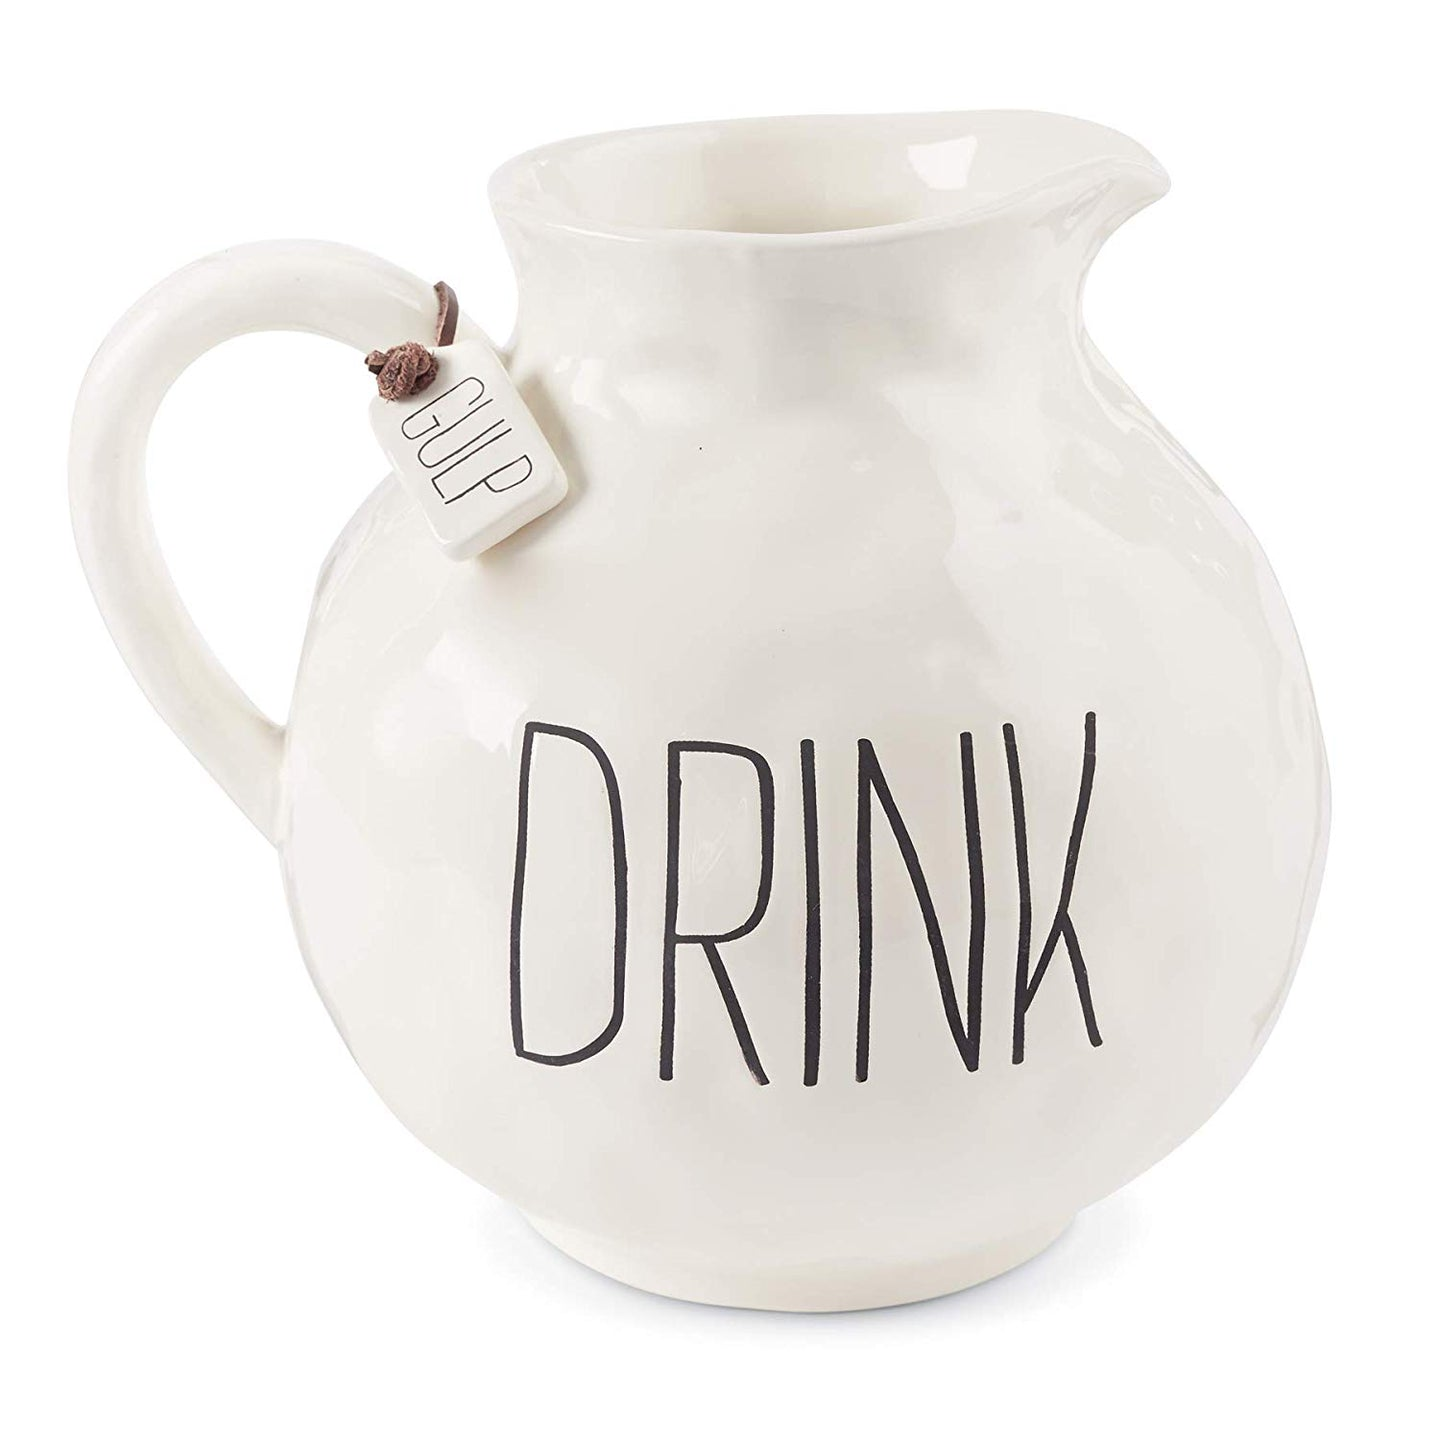 Farmhouse Inspired Mottled Drink Ceramic Pitcher